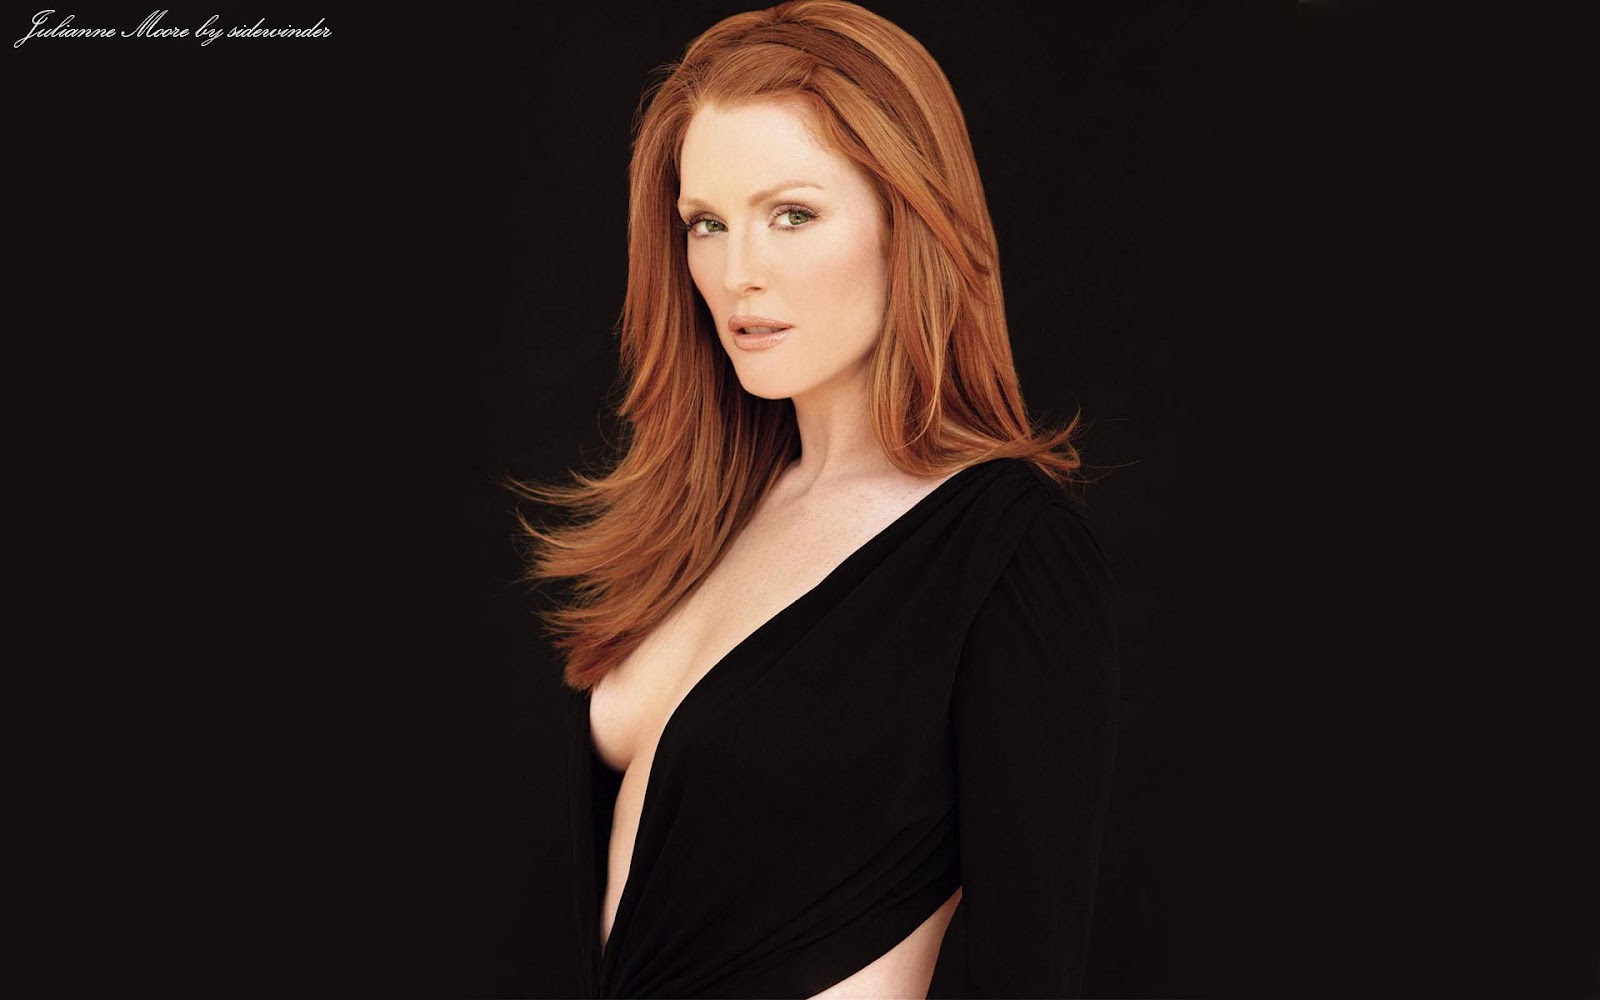 Julianne_moore Jm4jpg